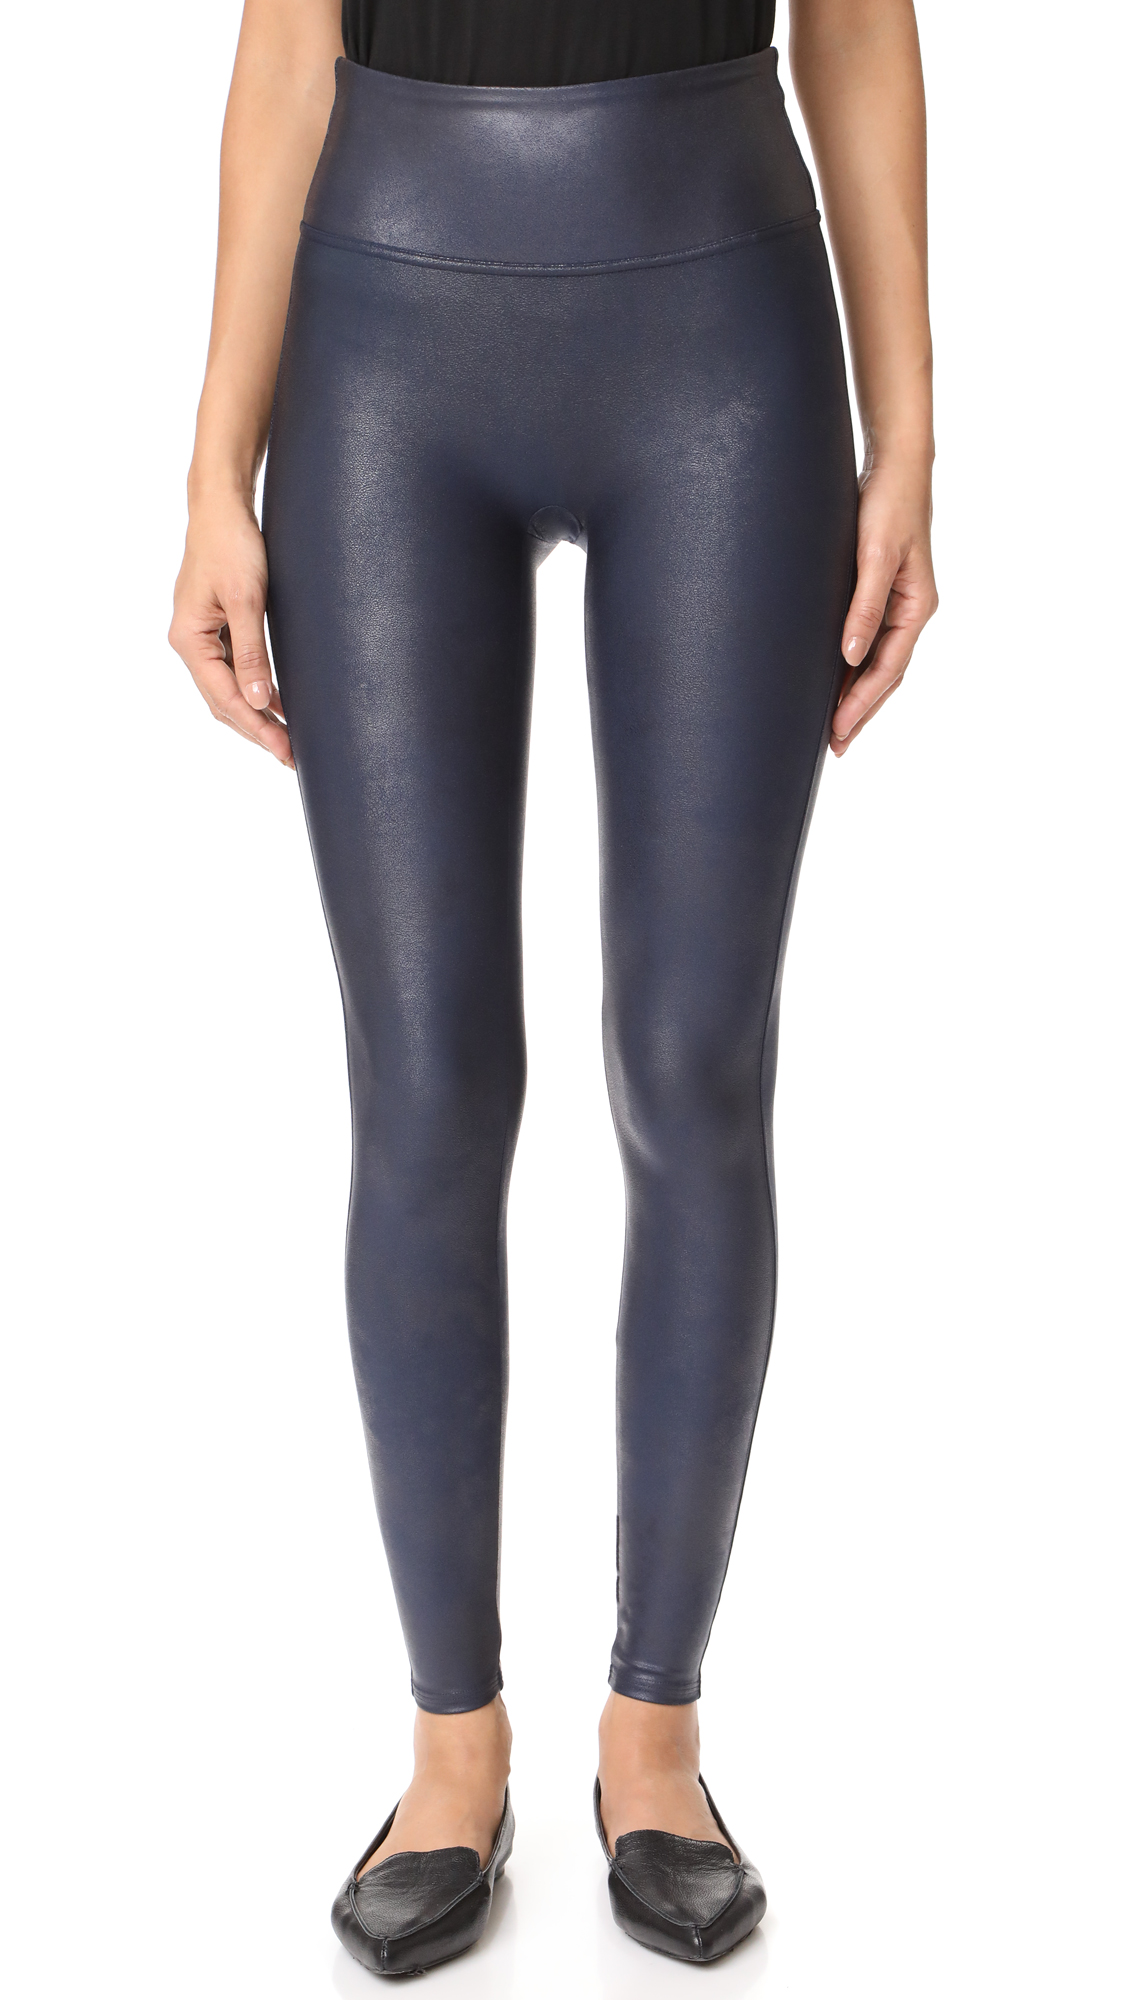 SPANX Faux Leather Leggings - Night Navy